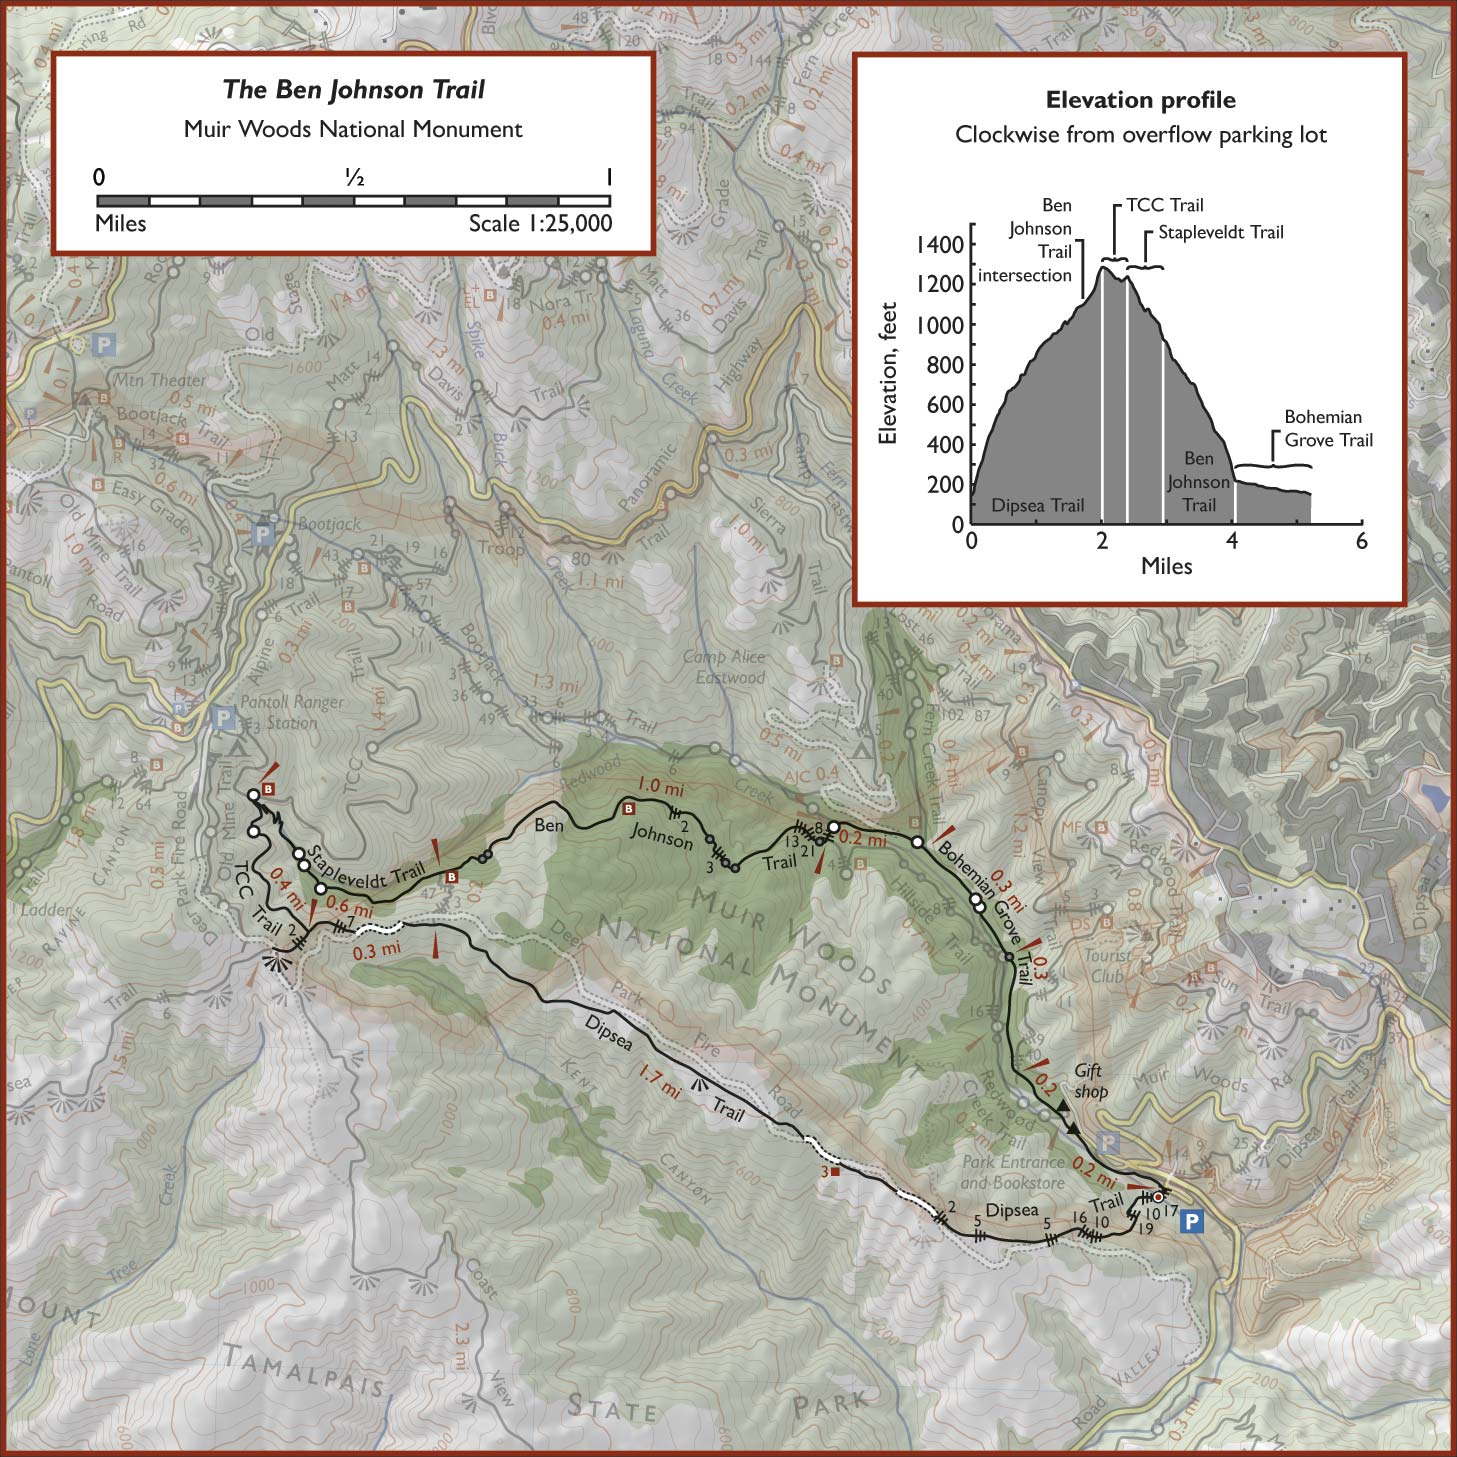 The Ben Johnson Trail Dipsea Trail Map on